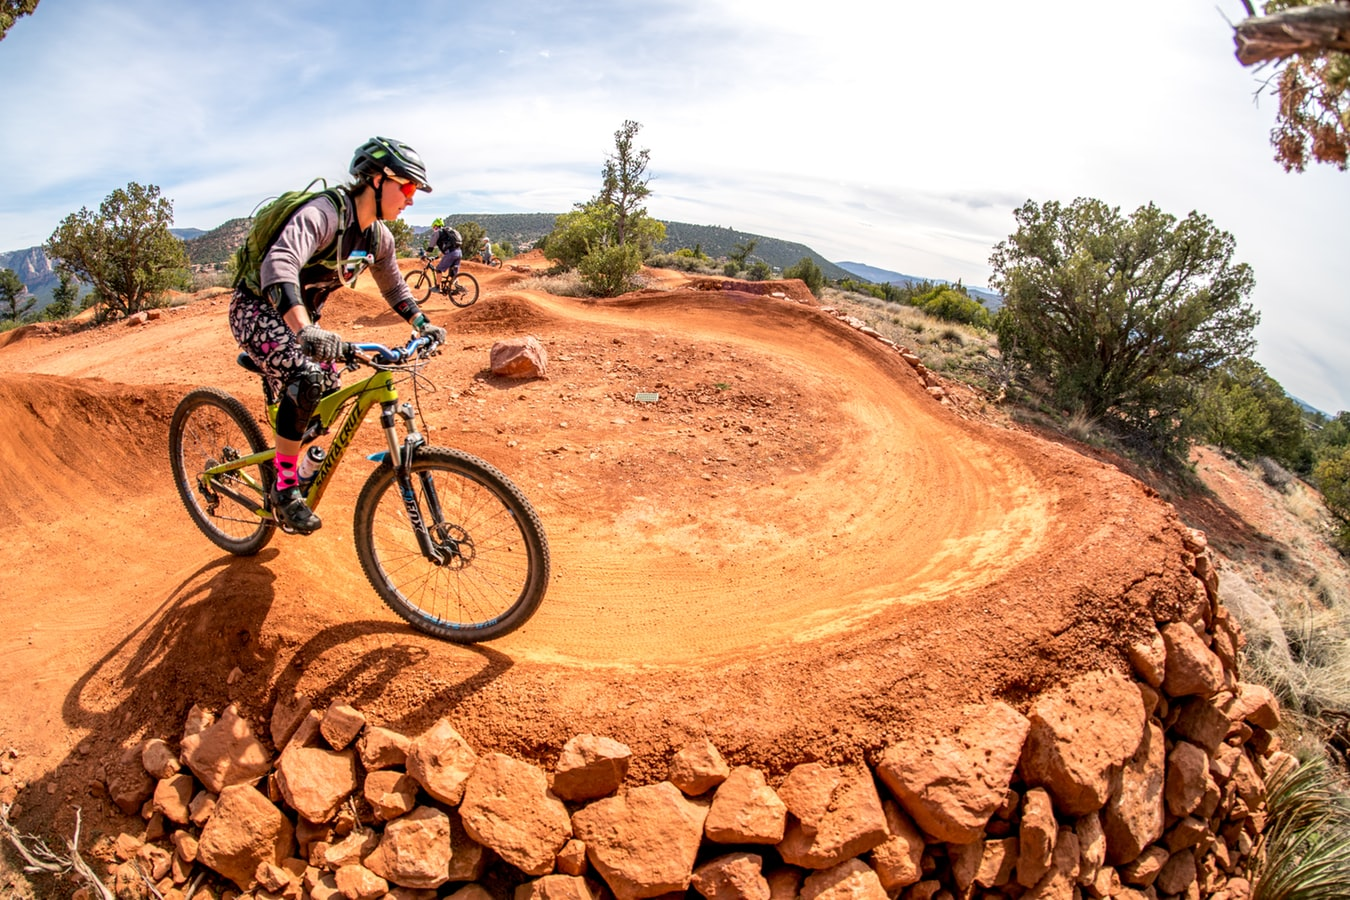 Mountain biking in Sedona, Arizona